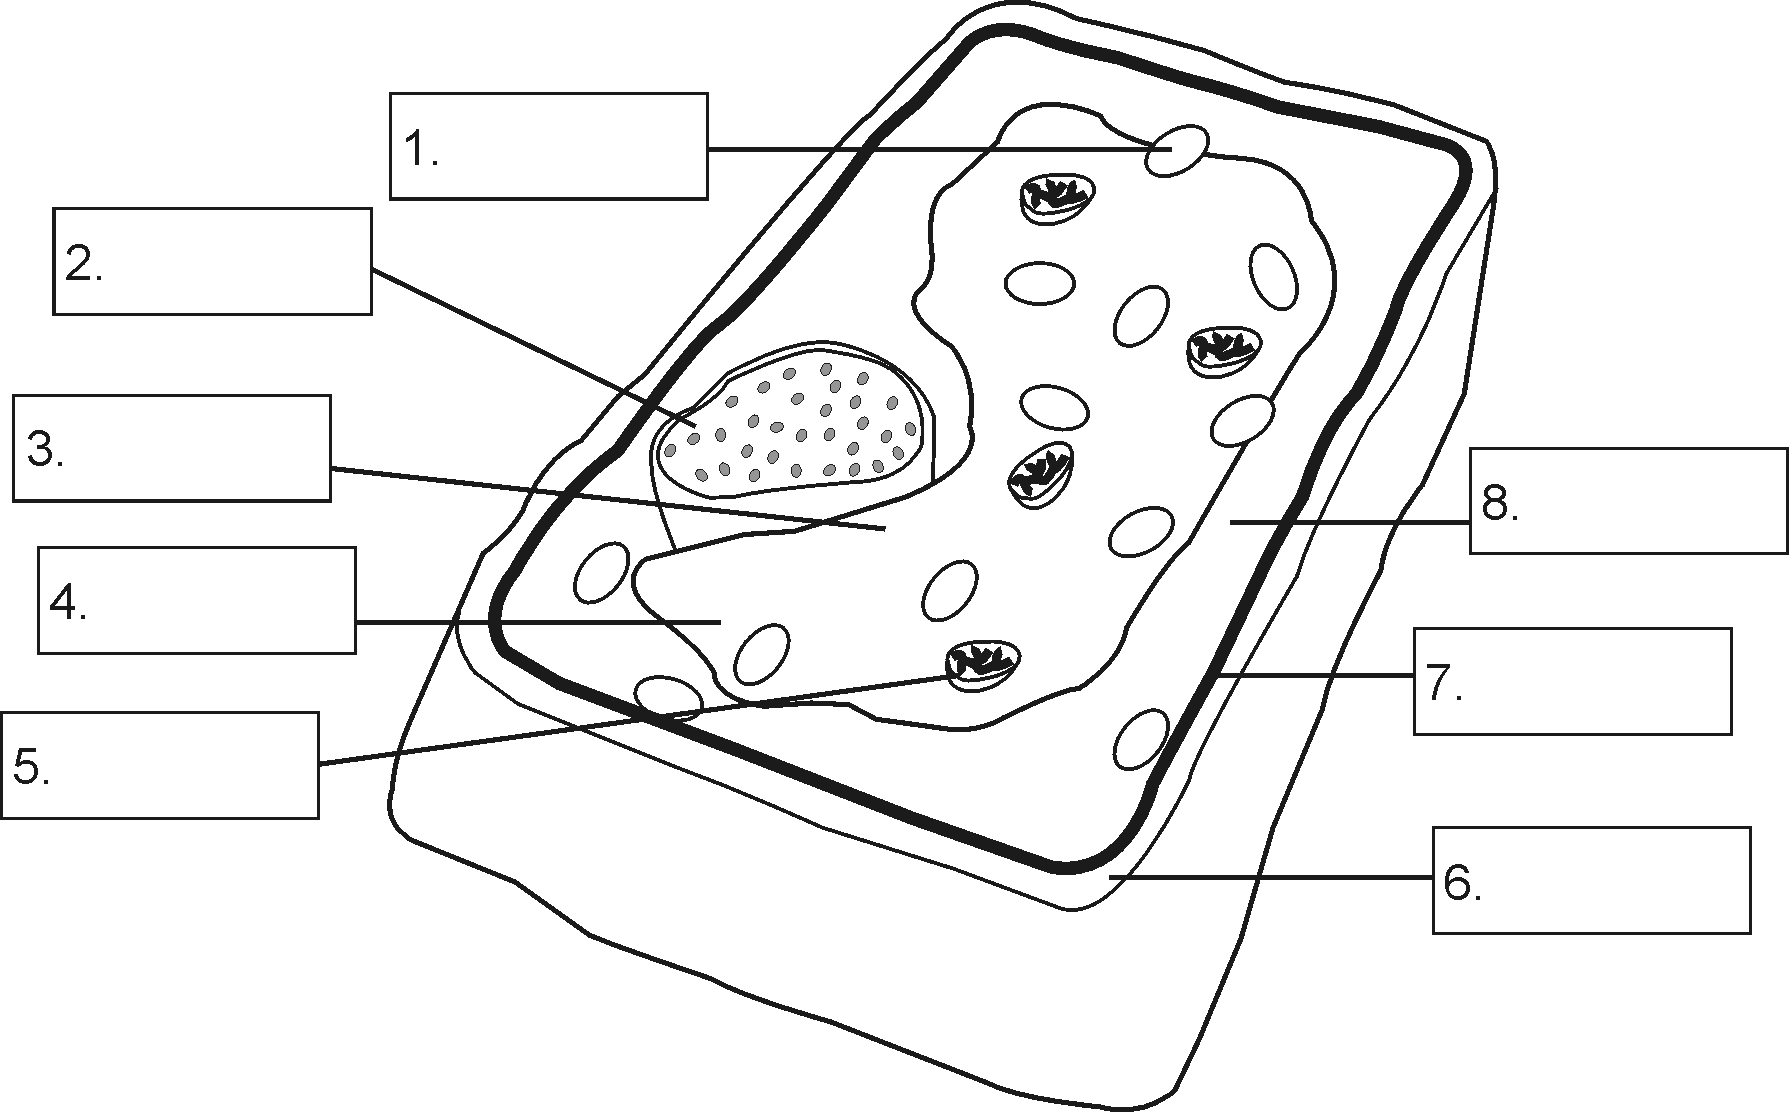 Plant Cell Drawing At Getdrawings